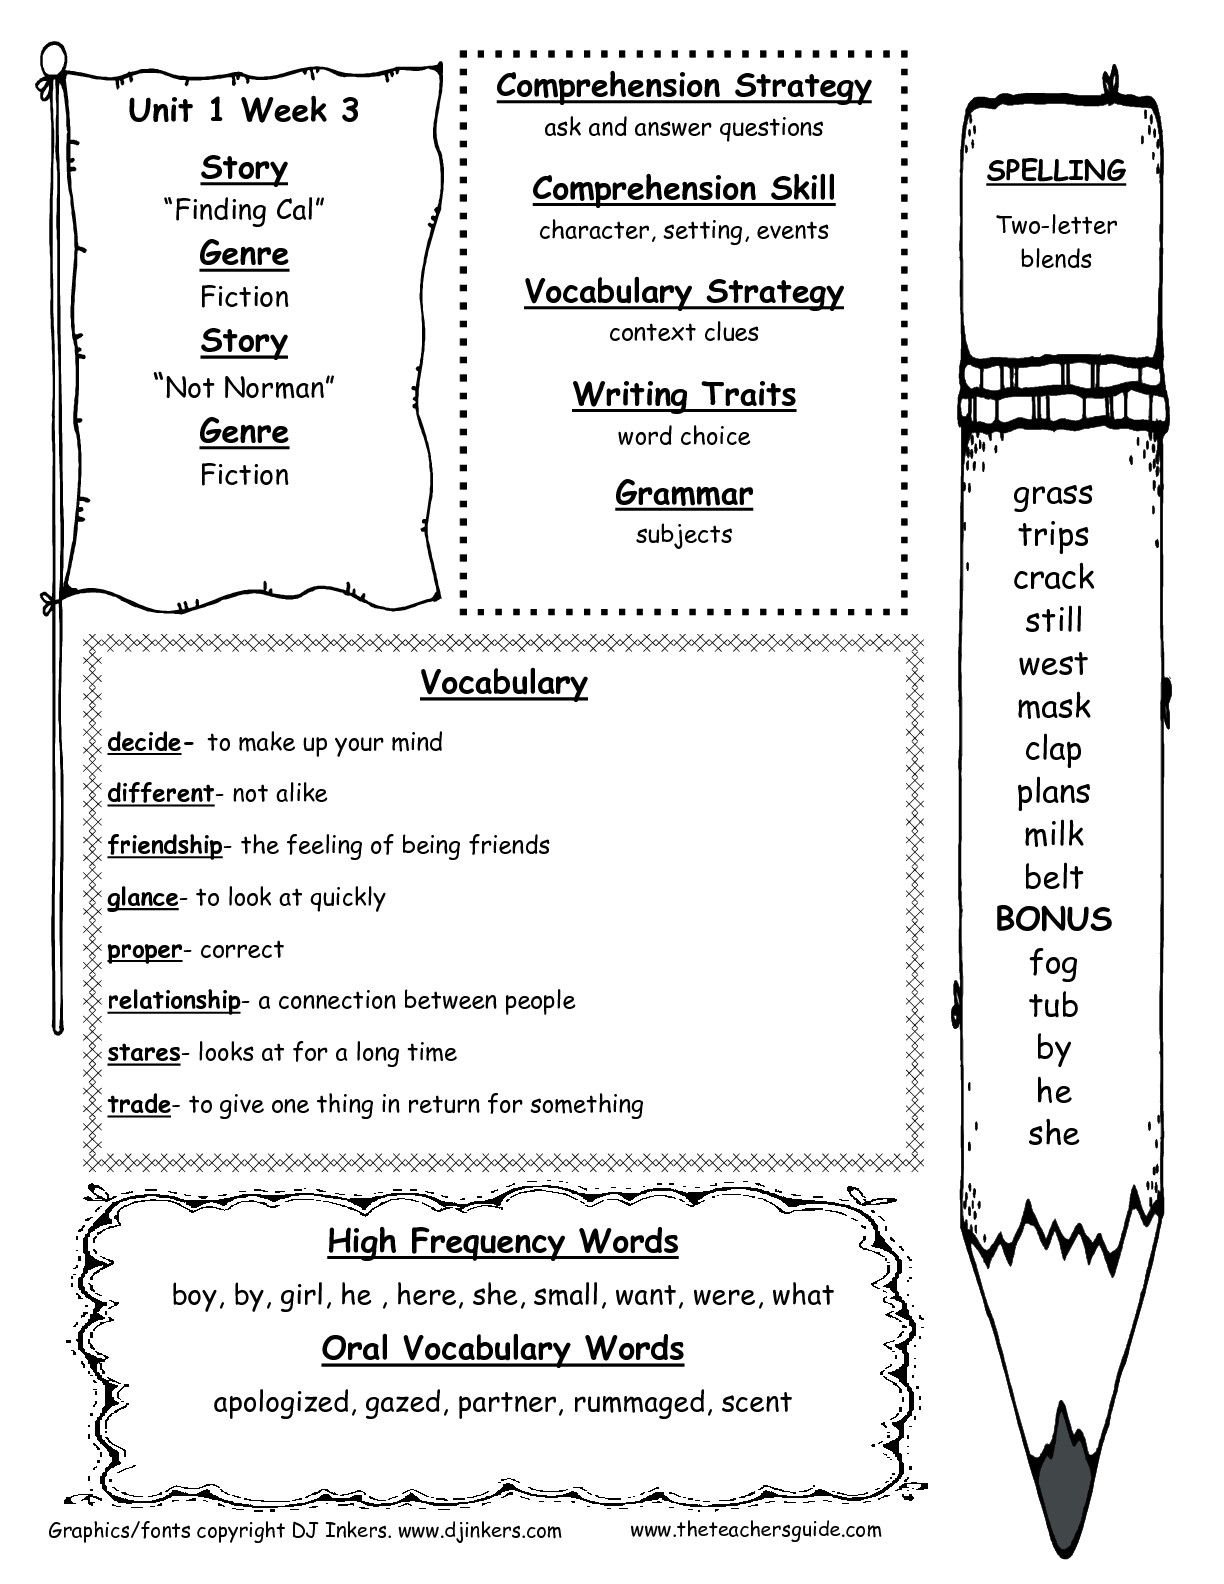 Worksheet Reading Comprehension Test For 2nd Grade mcgraw hill wonders second grade resources and printouts printouts